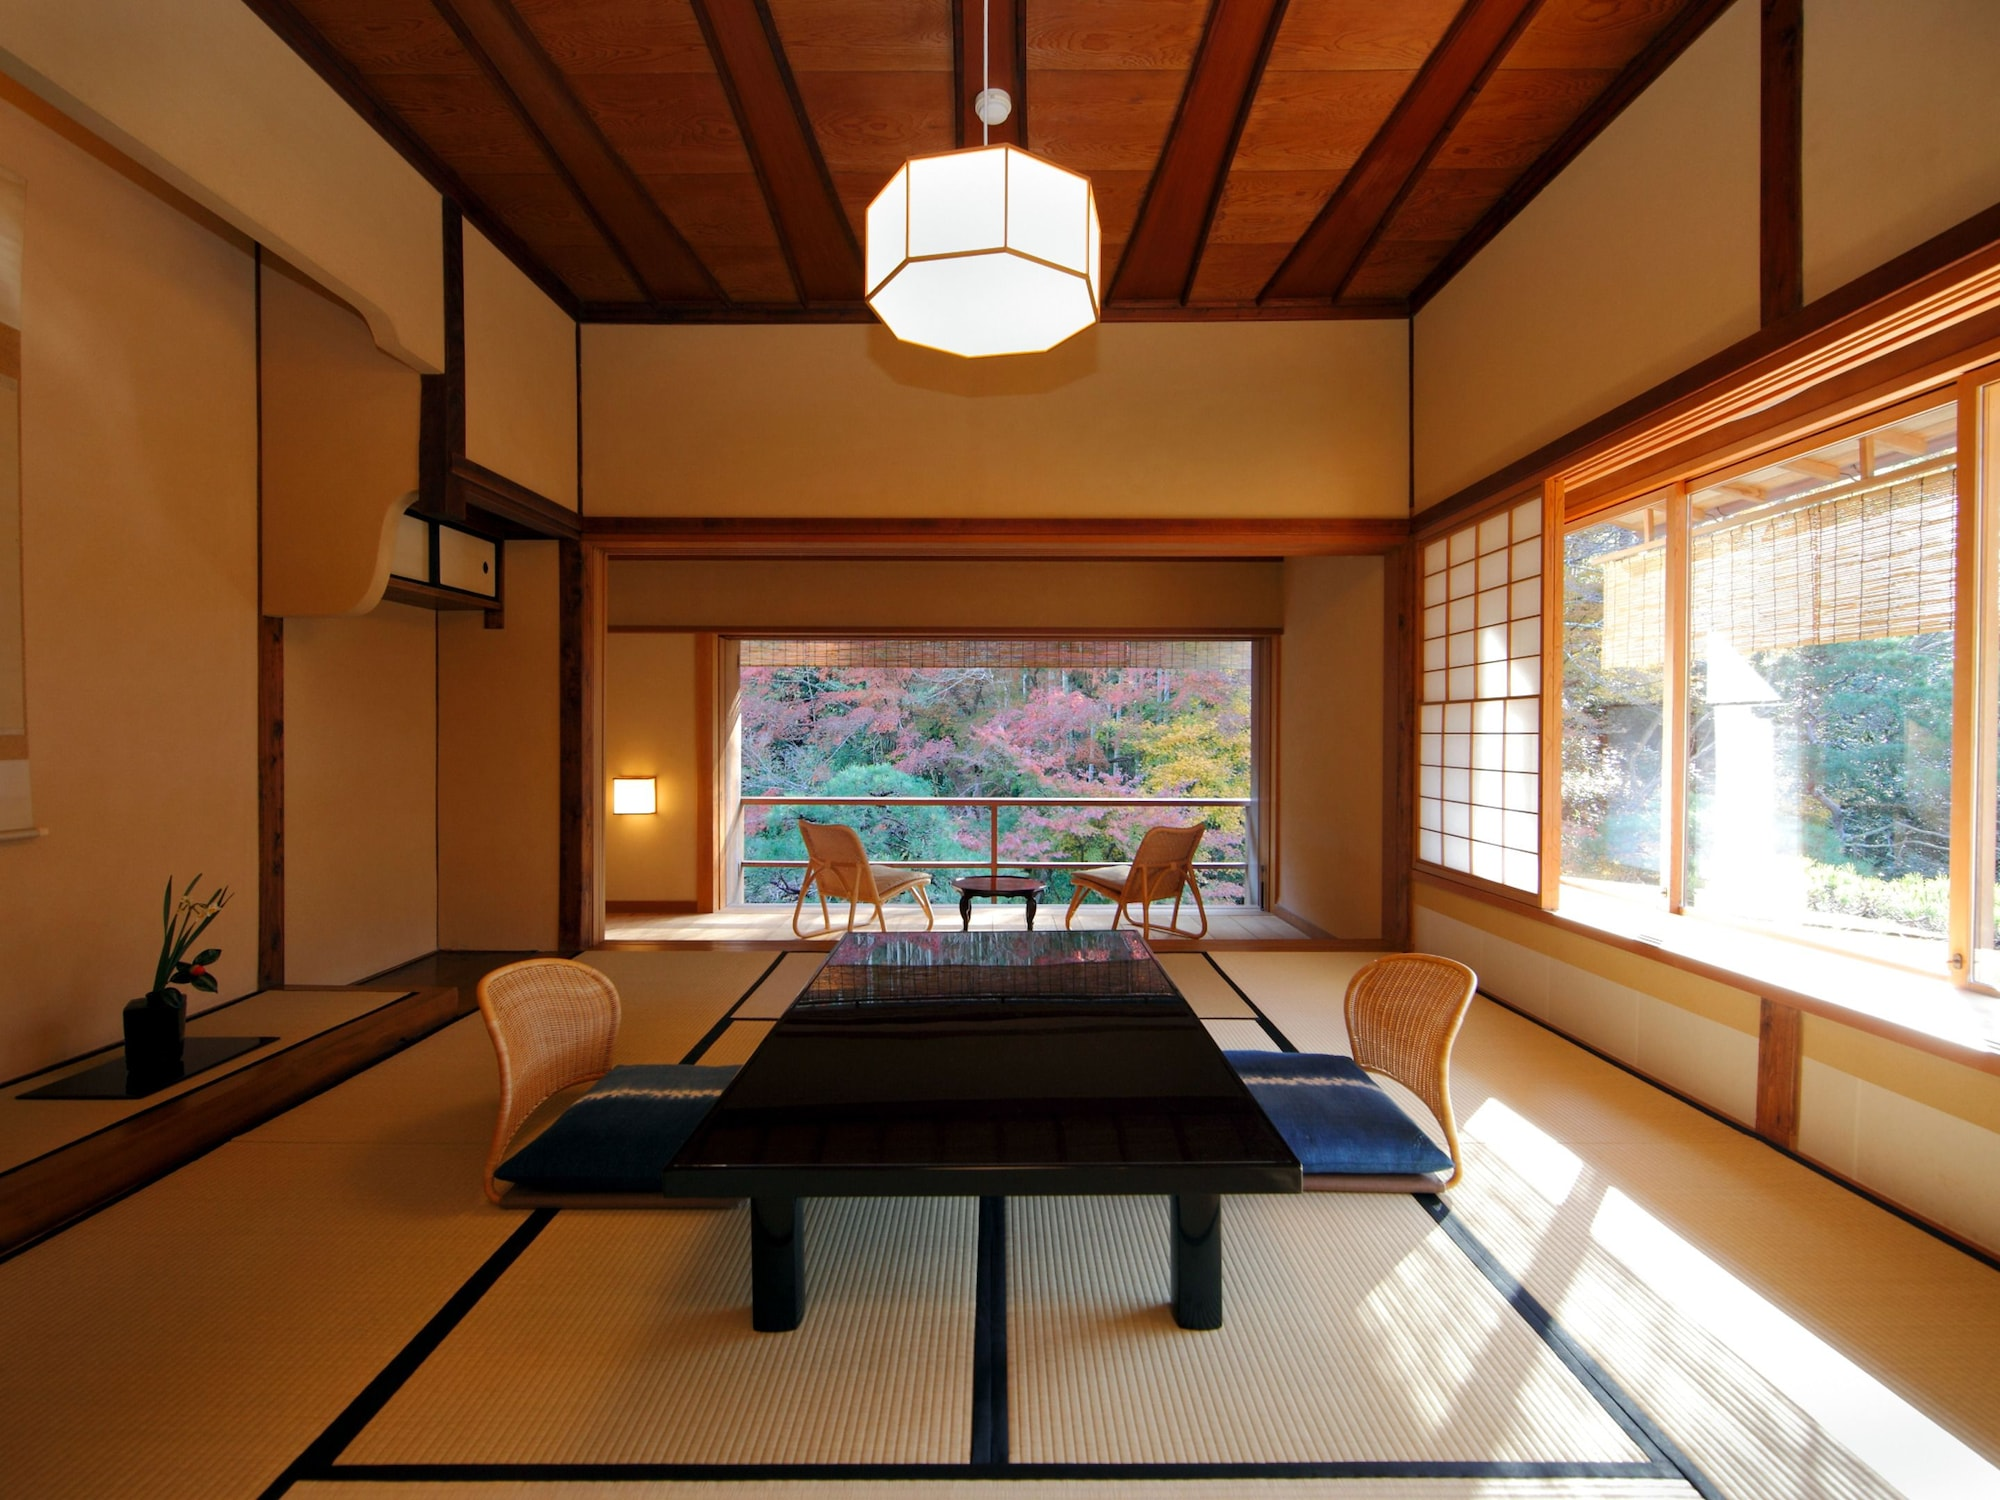 Suite, Traditional Japanese Tamami and Western-style, Garden View, Room name